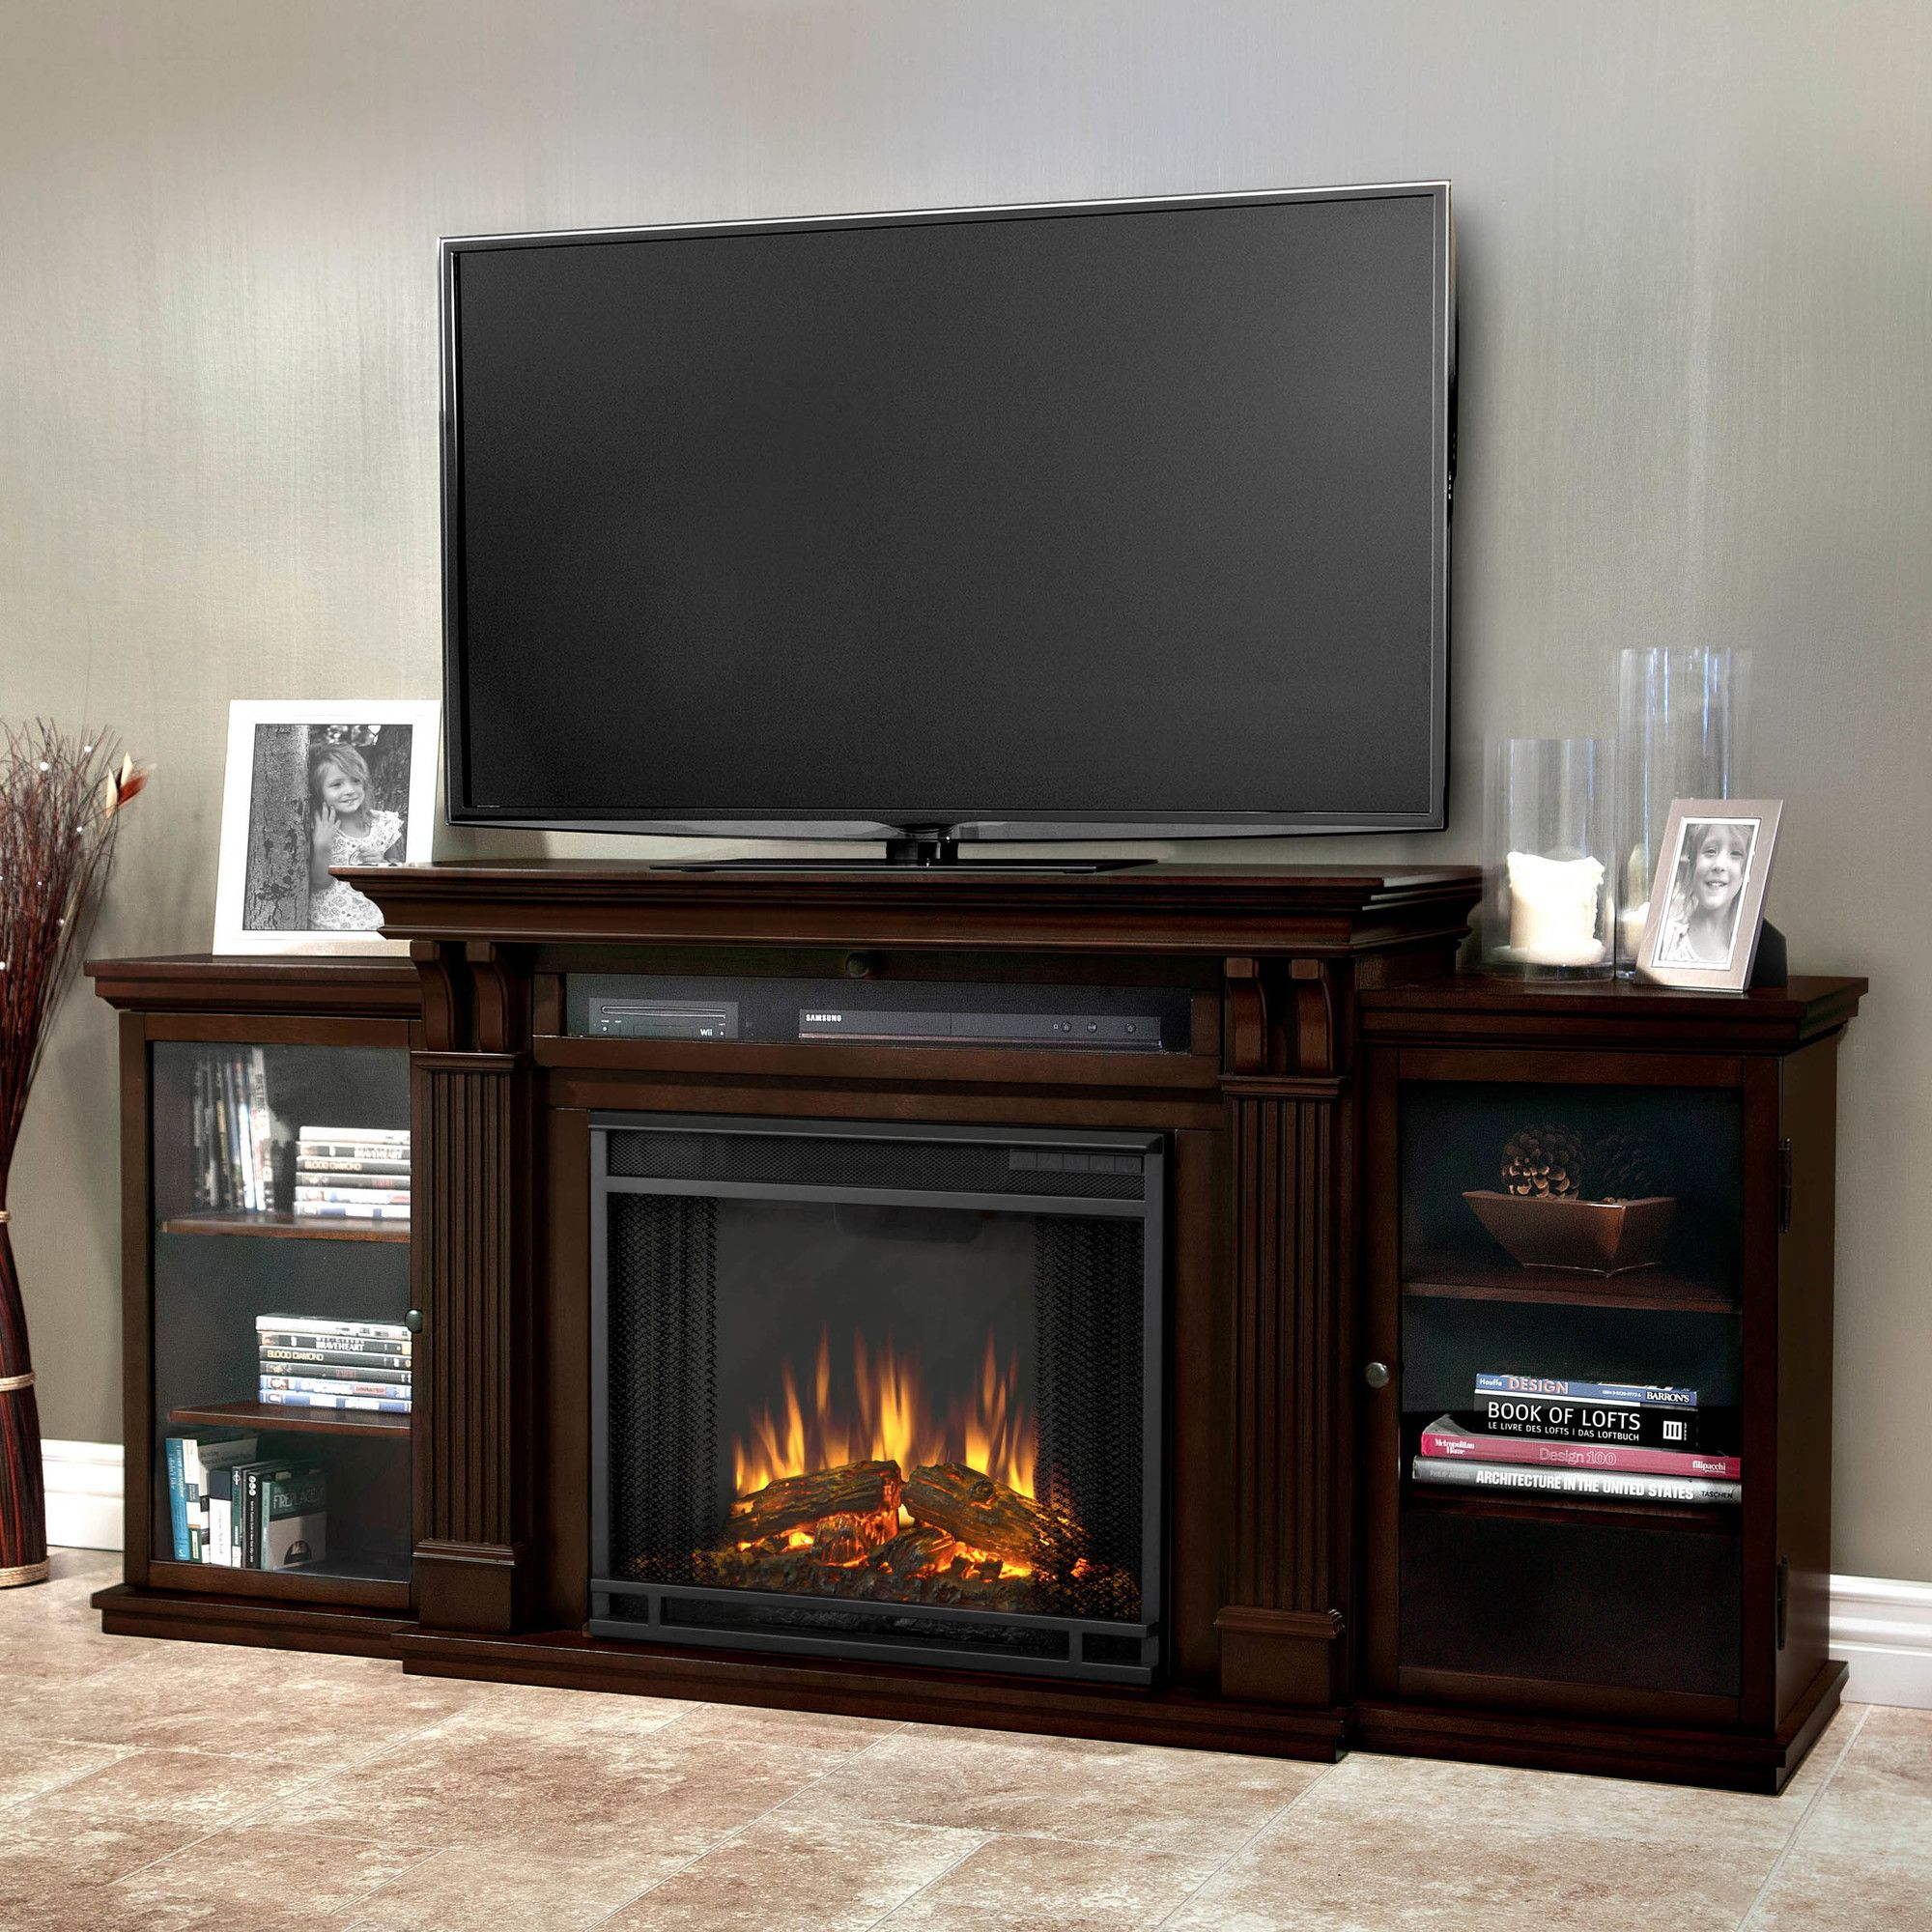 Features 1400 Watt Heater Rated Over 4 700 Btus Per Hour Drop Down Gl Fireplace Entertainment Fireplace Entertainment Center Electric Fireplace Tv Stand